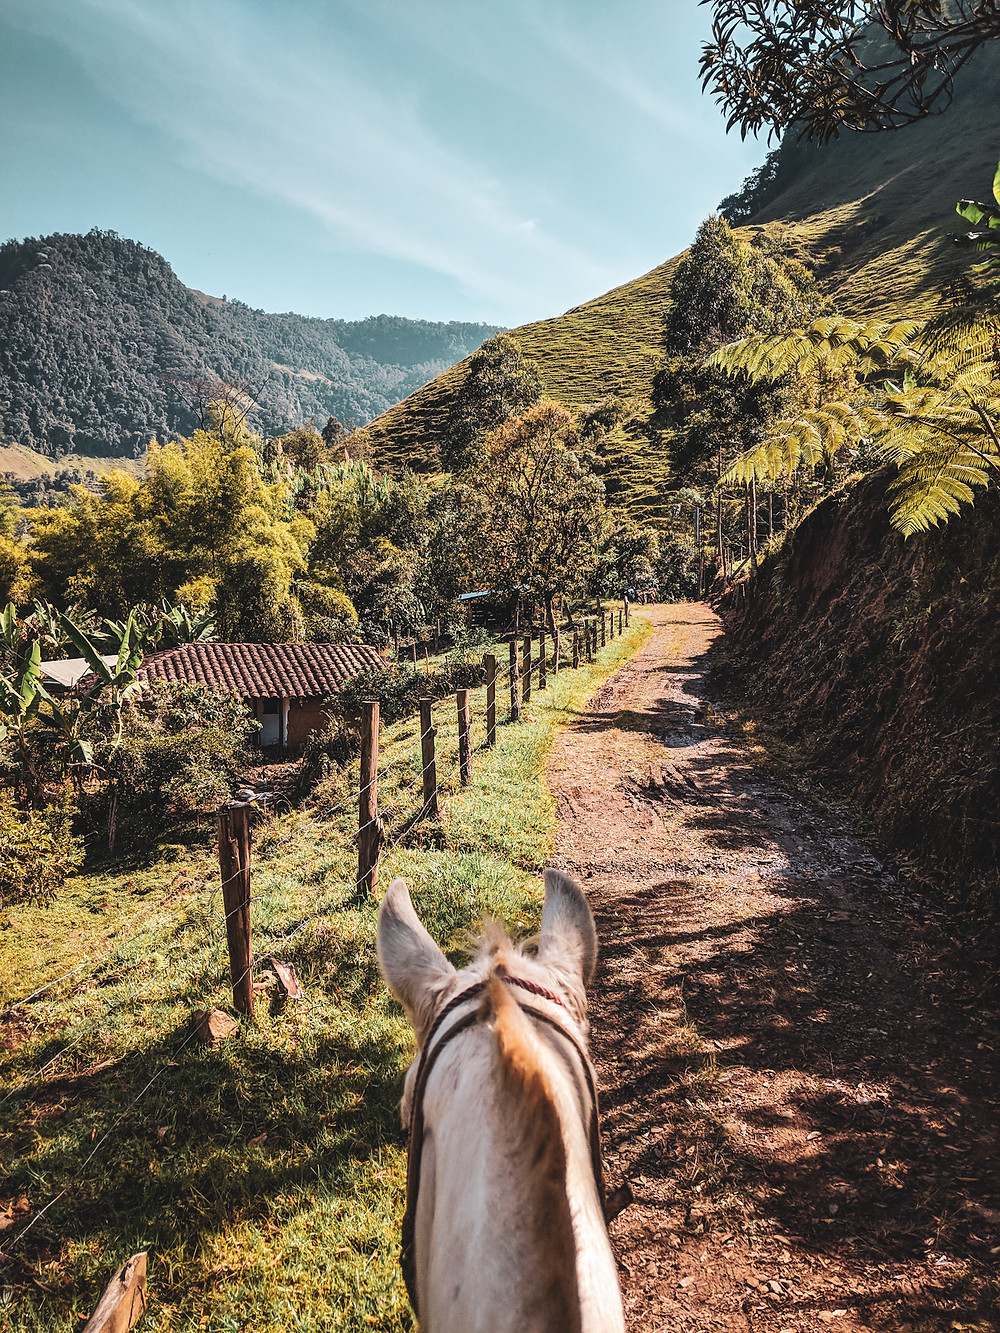 Riding horses in the mountains of Jardin, Colombia.